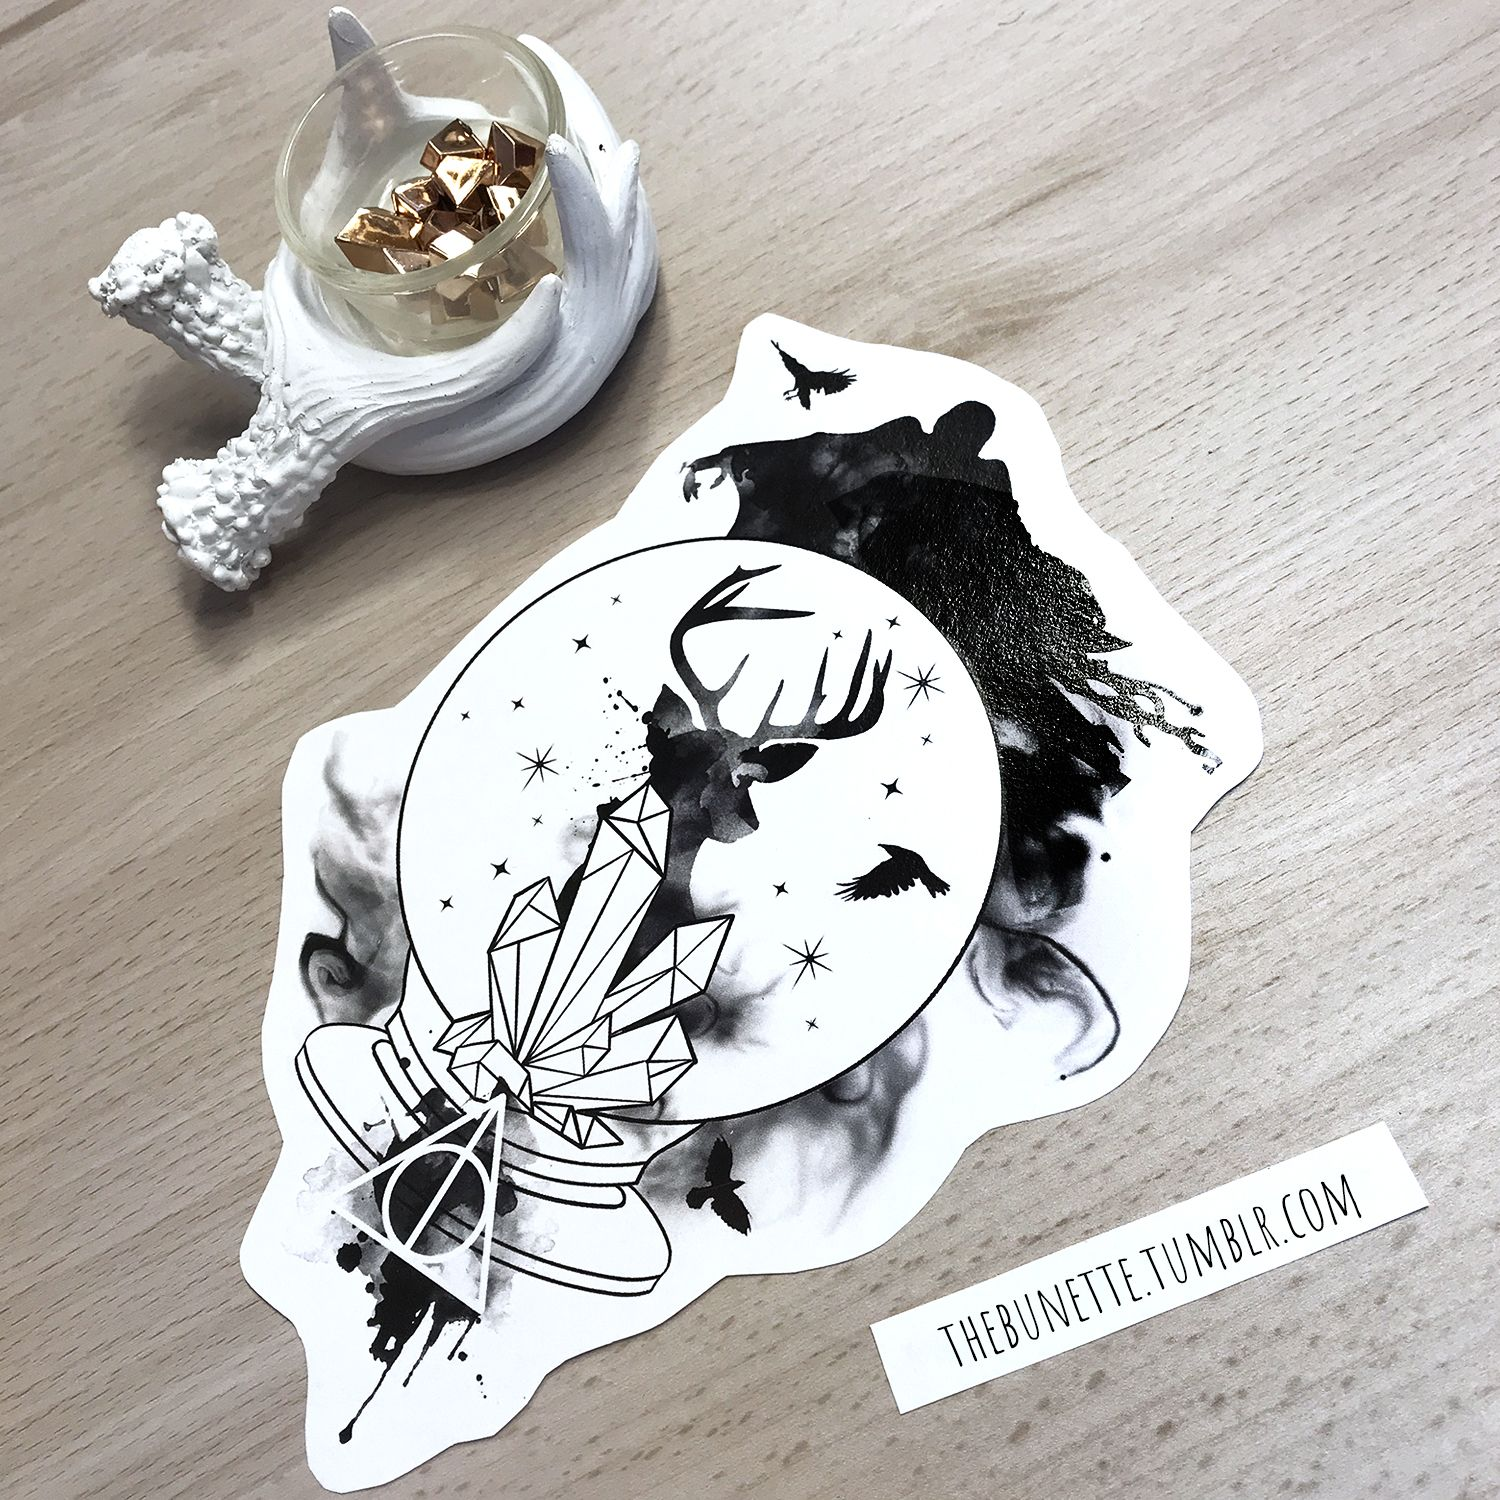 harry potter dementor deer deathly hallows tattoo illustration design inspiration drawing watercolor